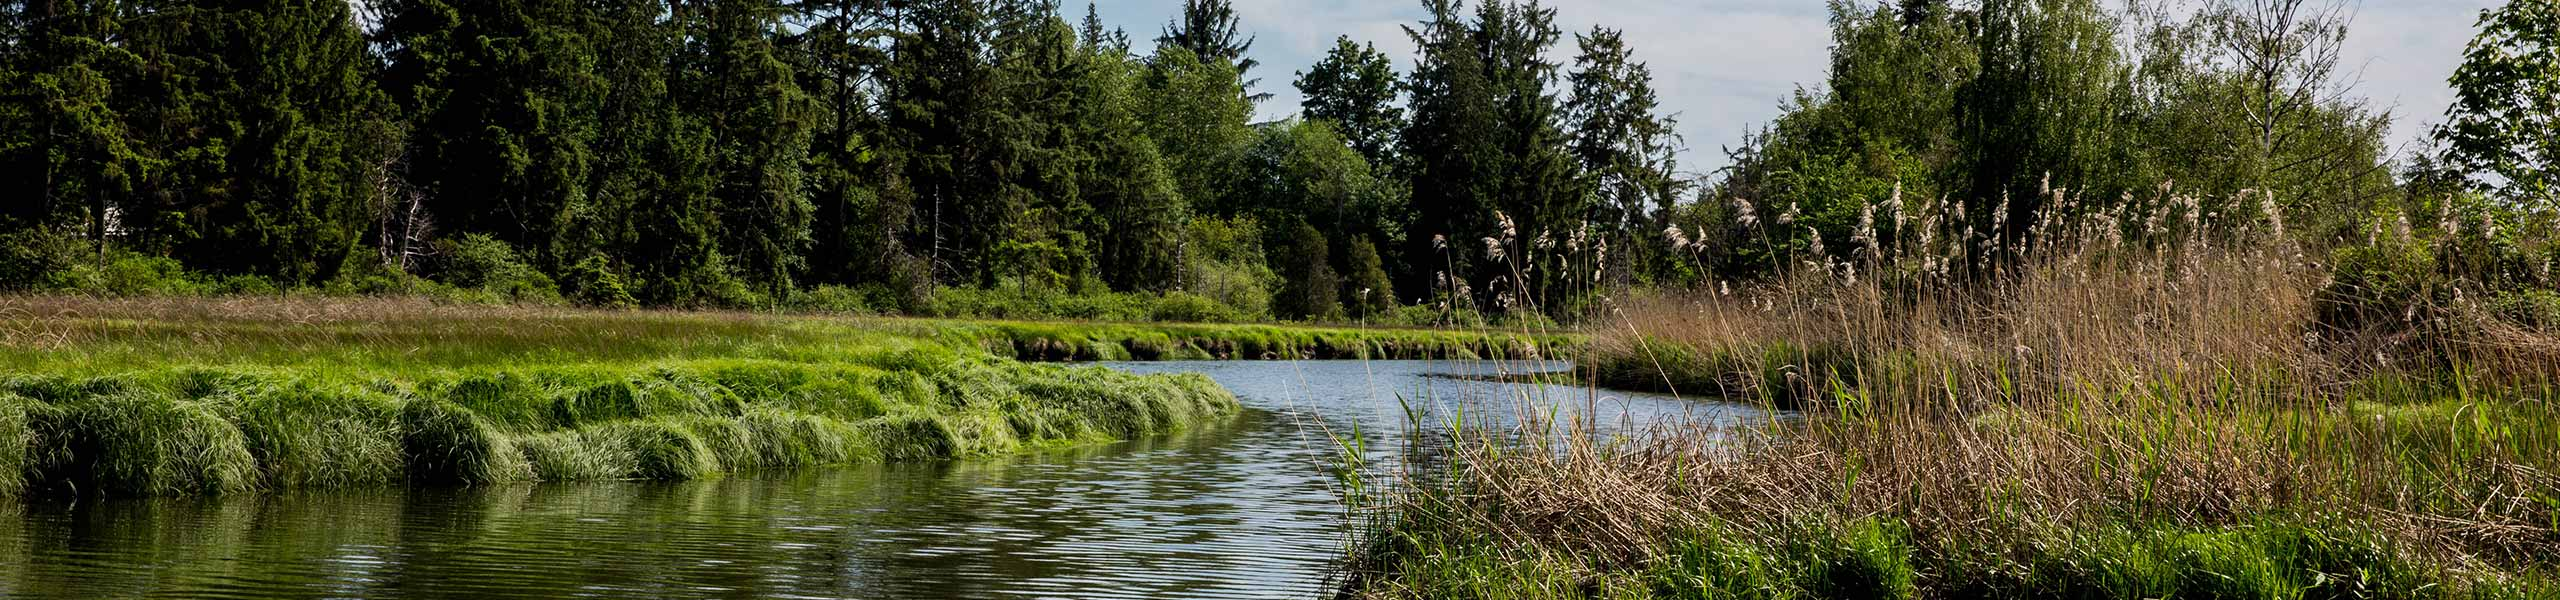 Tulalip Tribes Natural Resources Department image of wetland with forested and cleared habitat